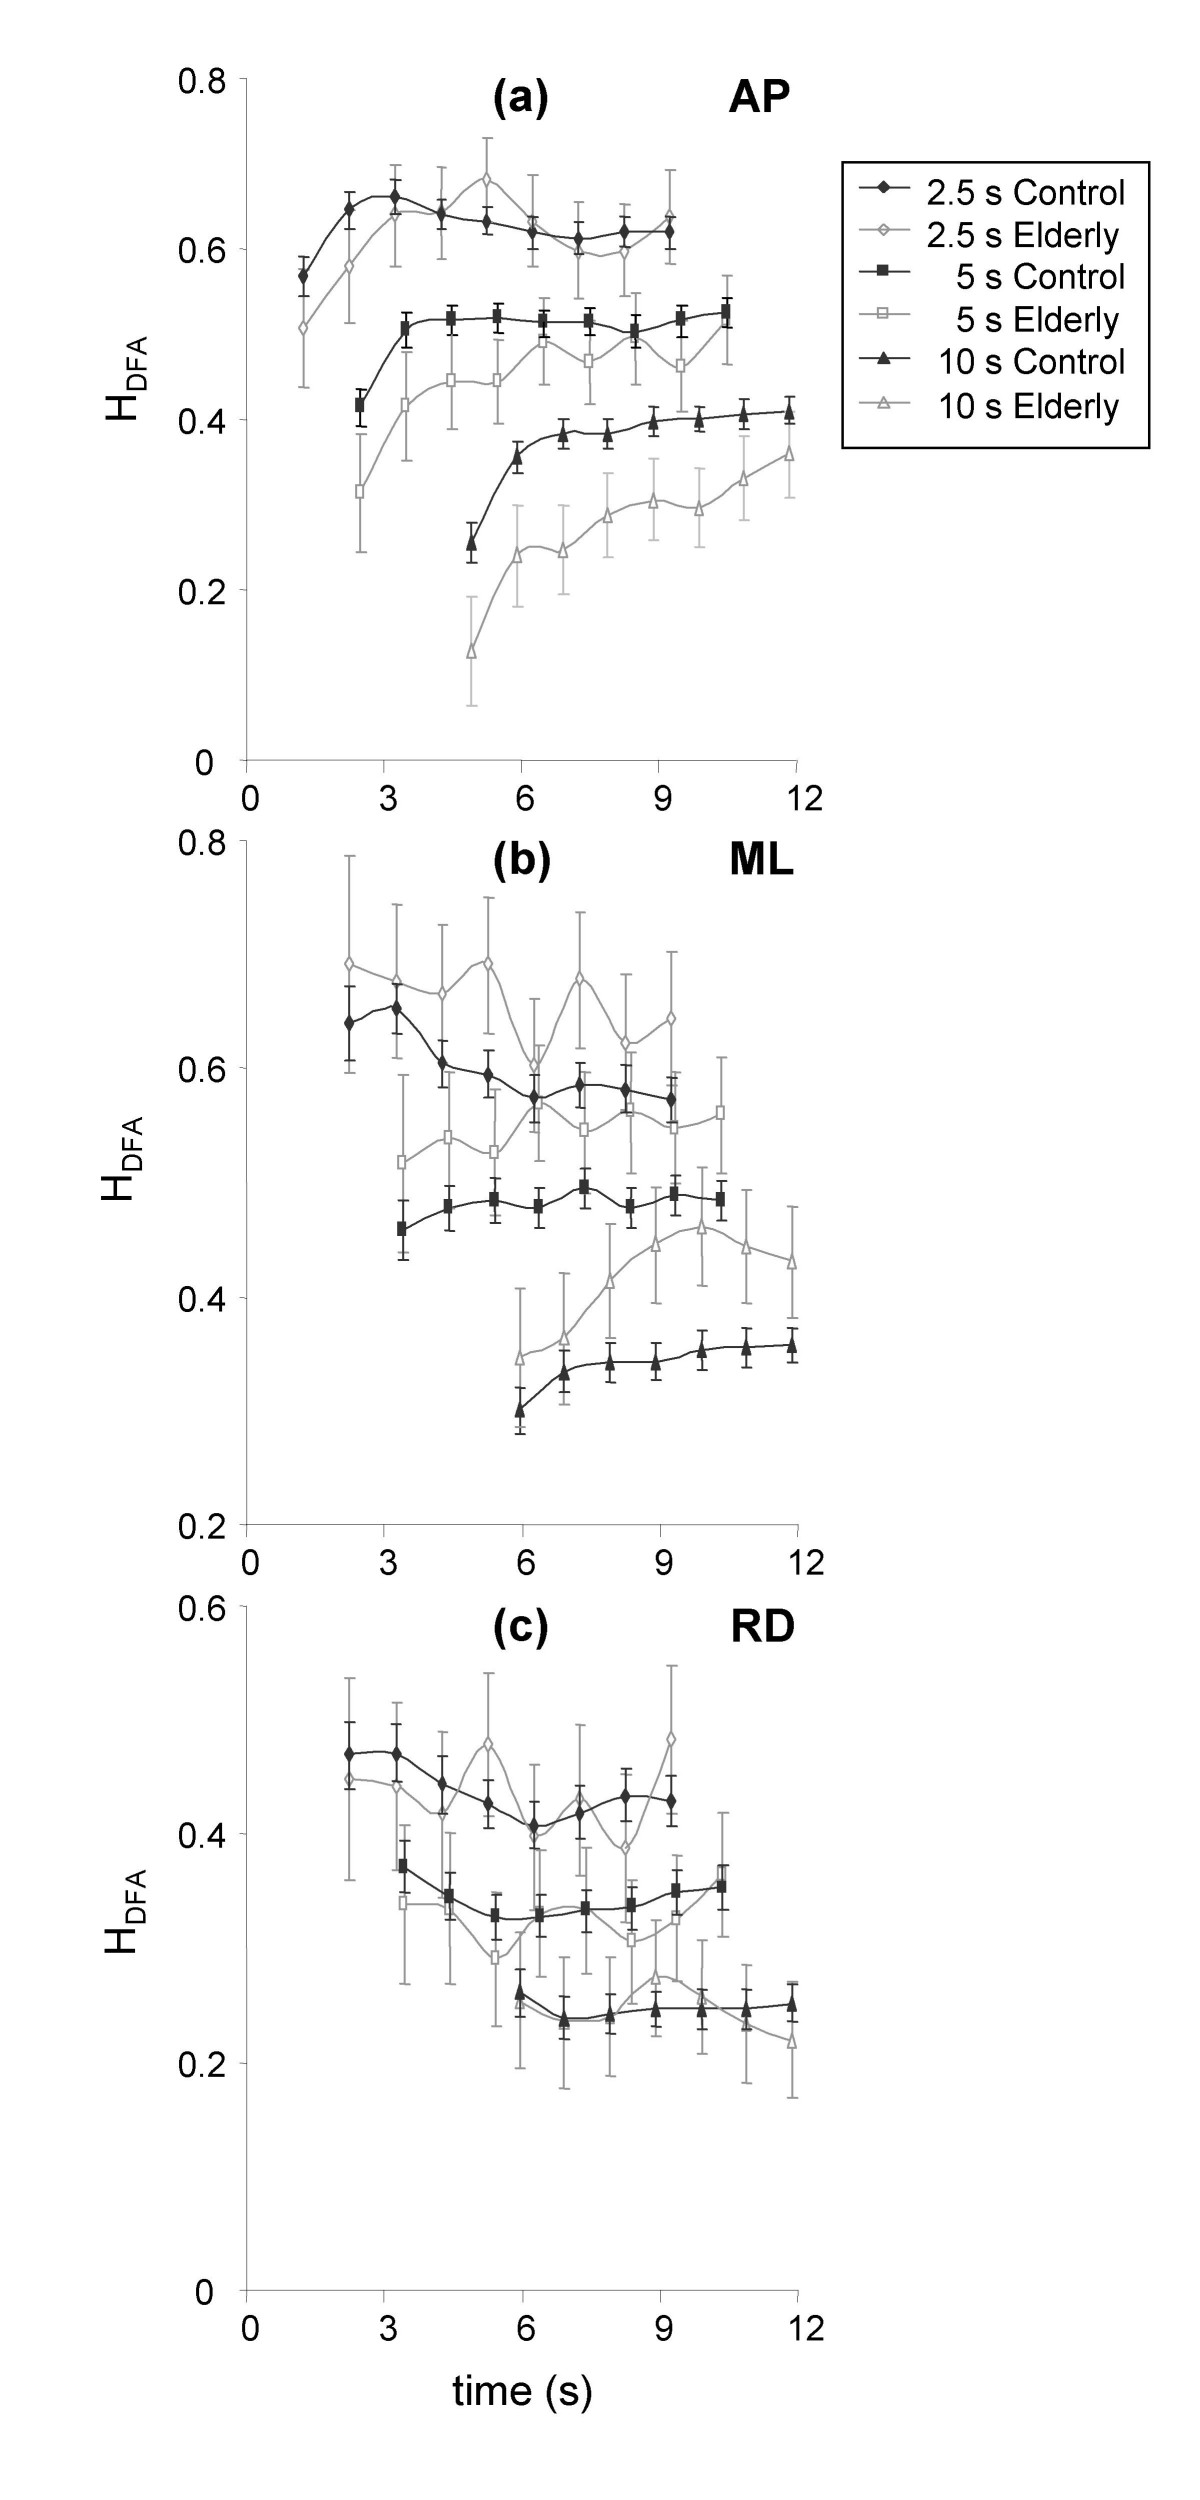 https://static-content.springer.com/image/art%3A10.1186%2F1743-0003-4-12/MediaObjects/12984_2006_Article_88_Fig4_HTML.jpg